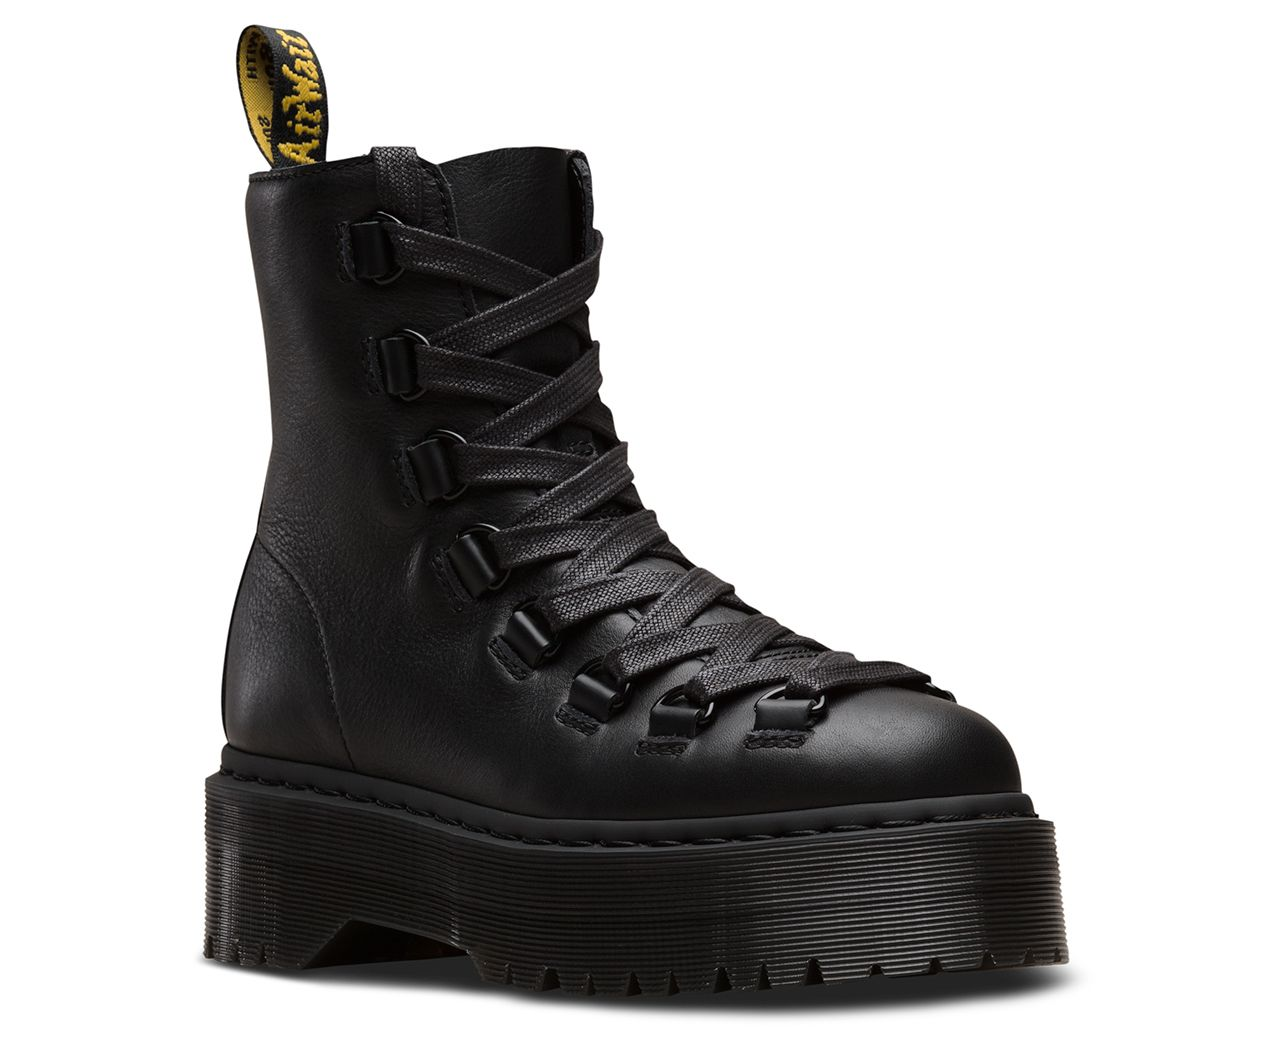 17f21aa25dc An alternative to the Jadon, this 8-eye boot's punk-inspired look is  fierce, featuring laced-to-the-toe D-rings, ribbon laces and an  extra-chunky, ...